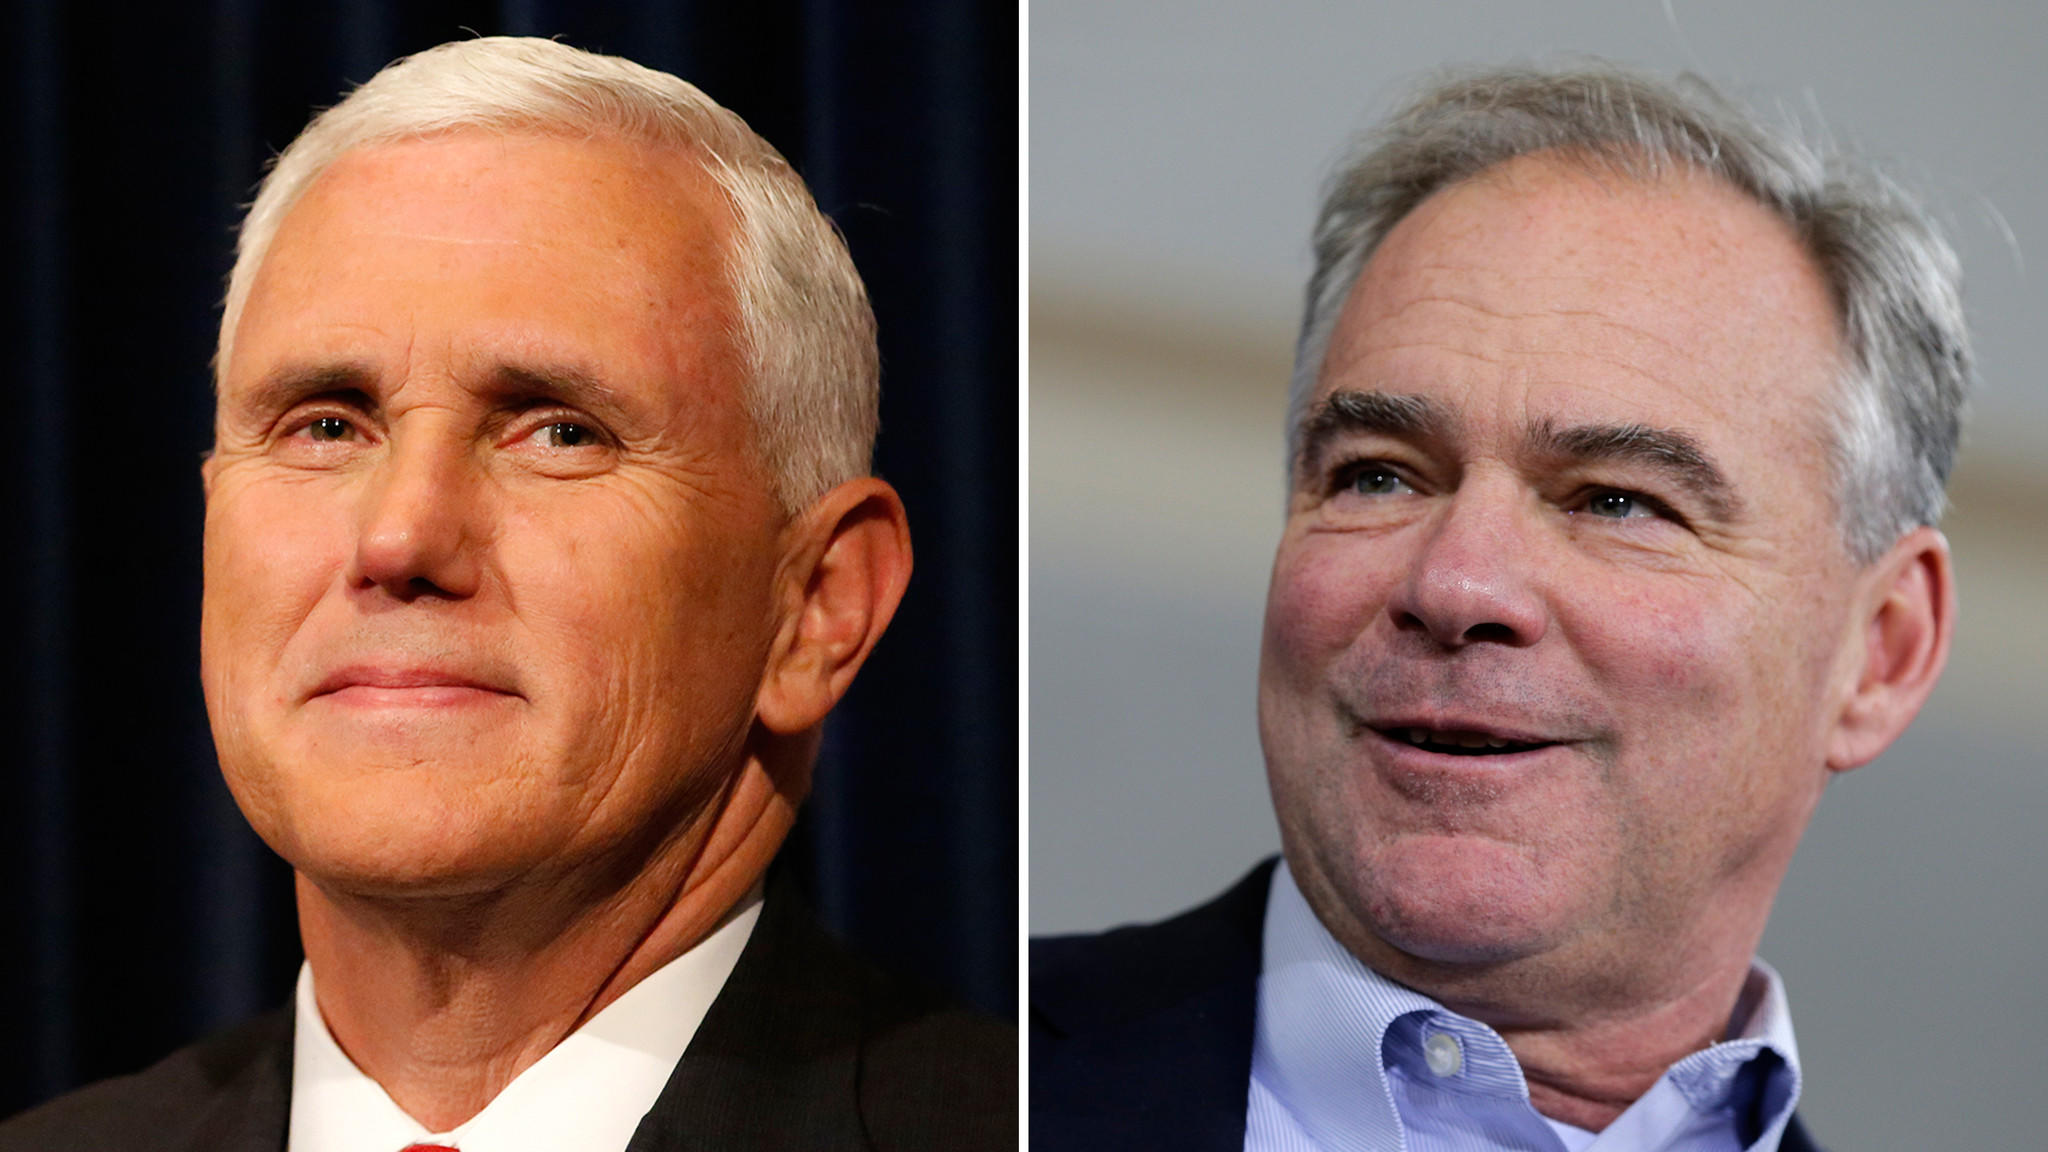 Mike Pence & Tim Kaine. Found at http://www.latimes.com/nation/politics/trailguide/la-na-vice-presidential-debate-live-vp-debate-promises-high-viewership-but-1475612724-htmlstory.html